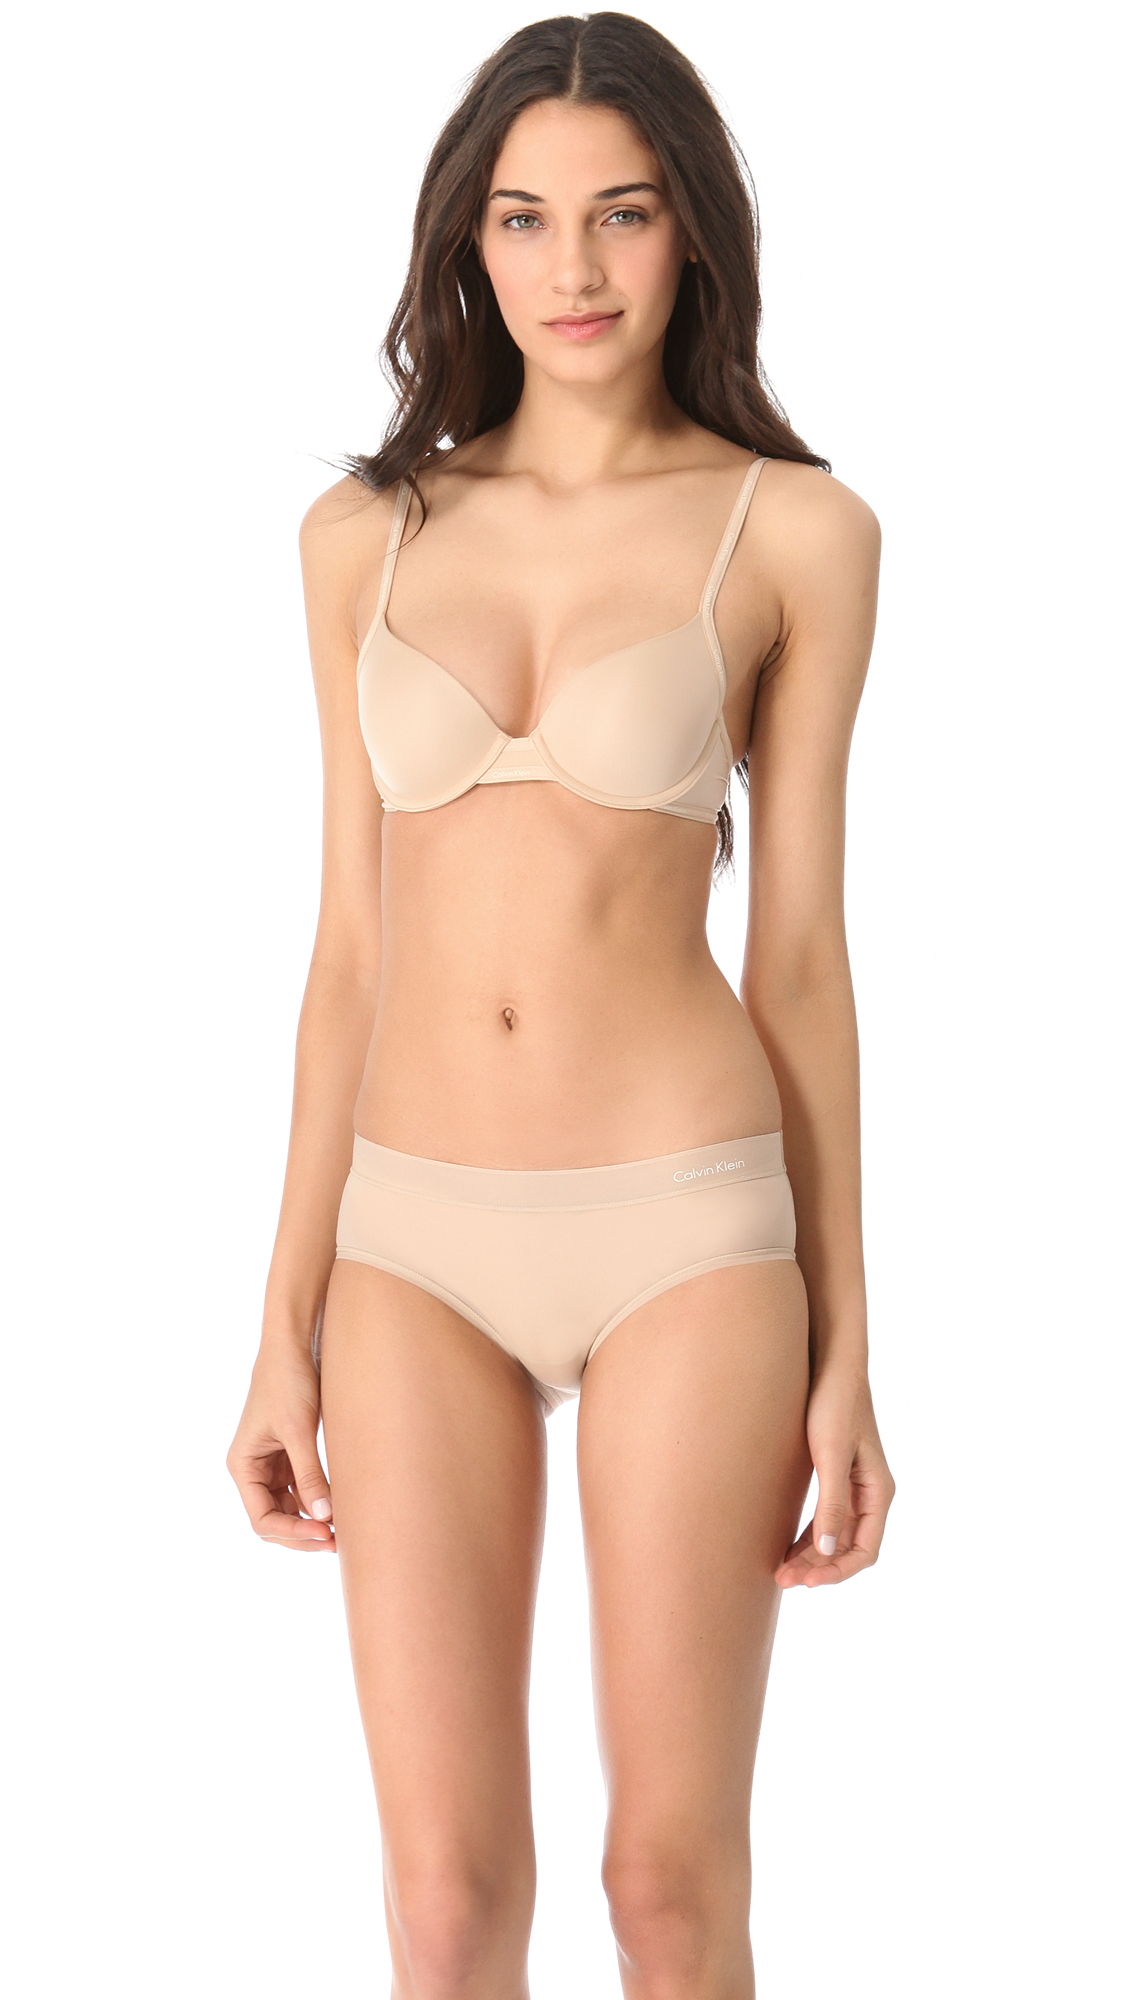 bd06080344d8d Lyst - Calvin Klein Perfectly Fit Sexy Signature Demi Bra in Natural